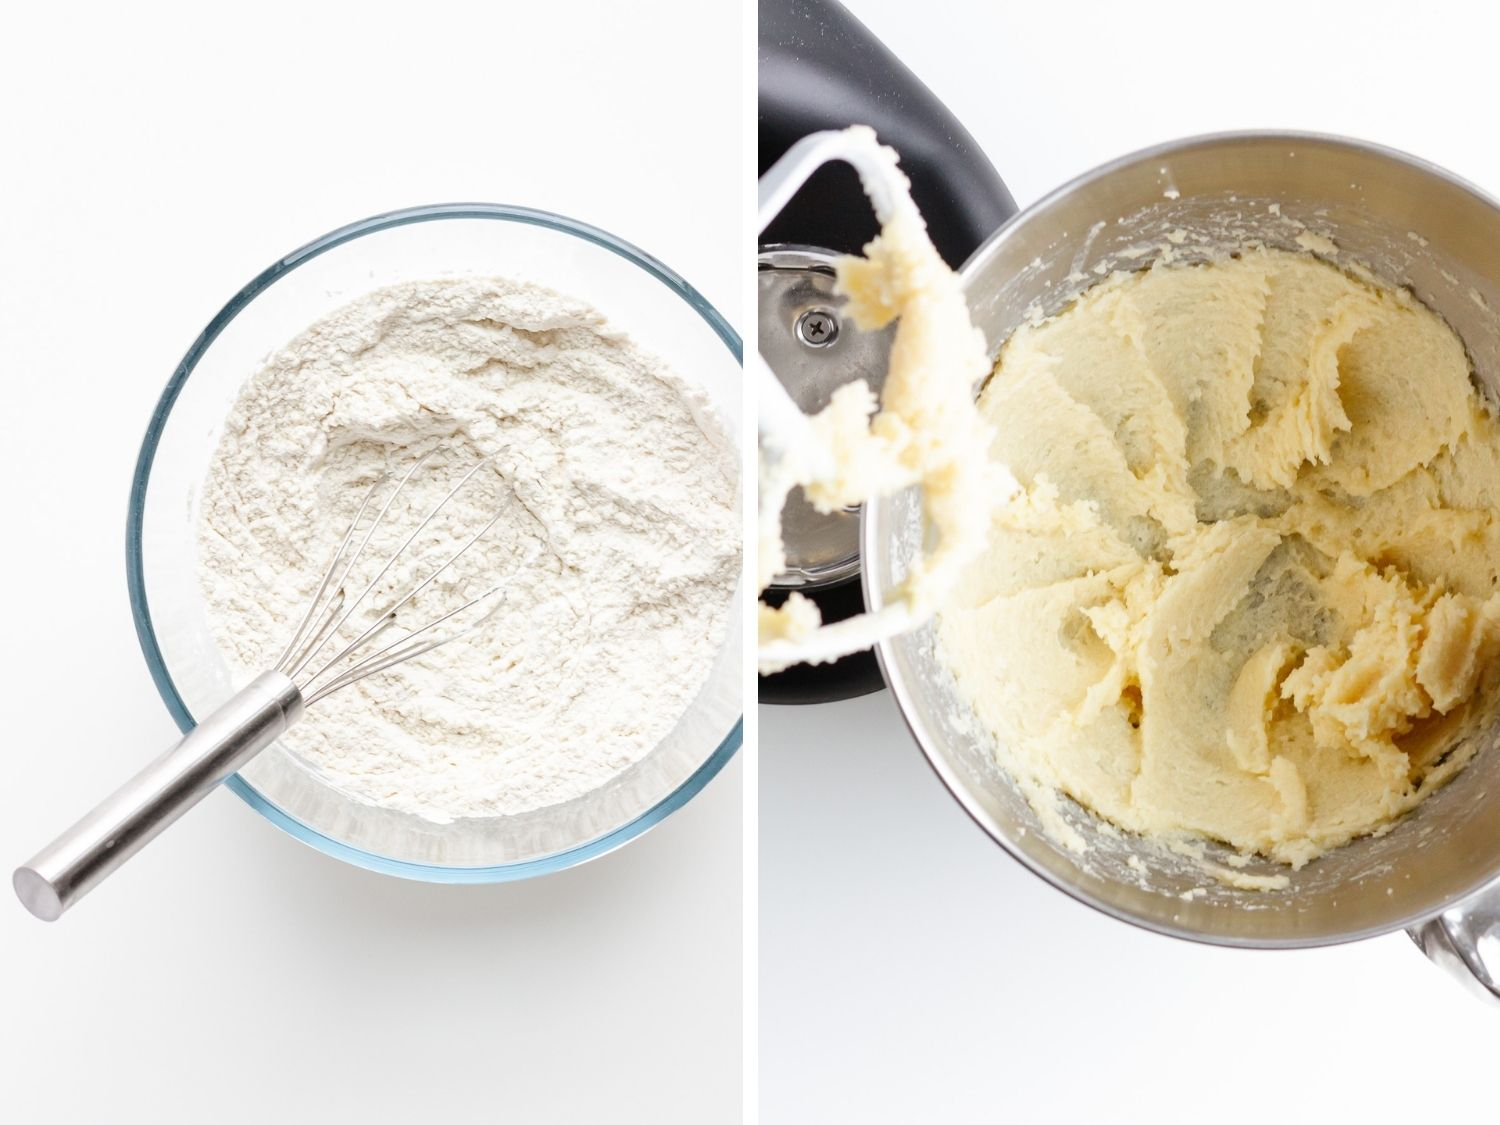 Photo collage showing dry ingredients being whisked together in a bowl and butter and sugar being creamed in a mixer.